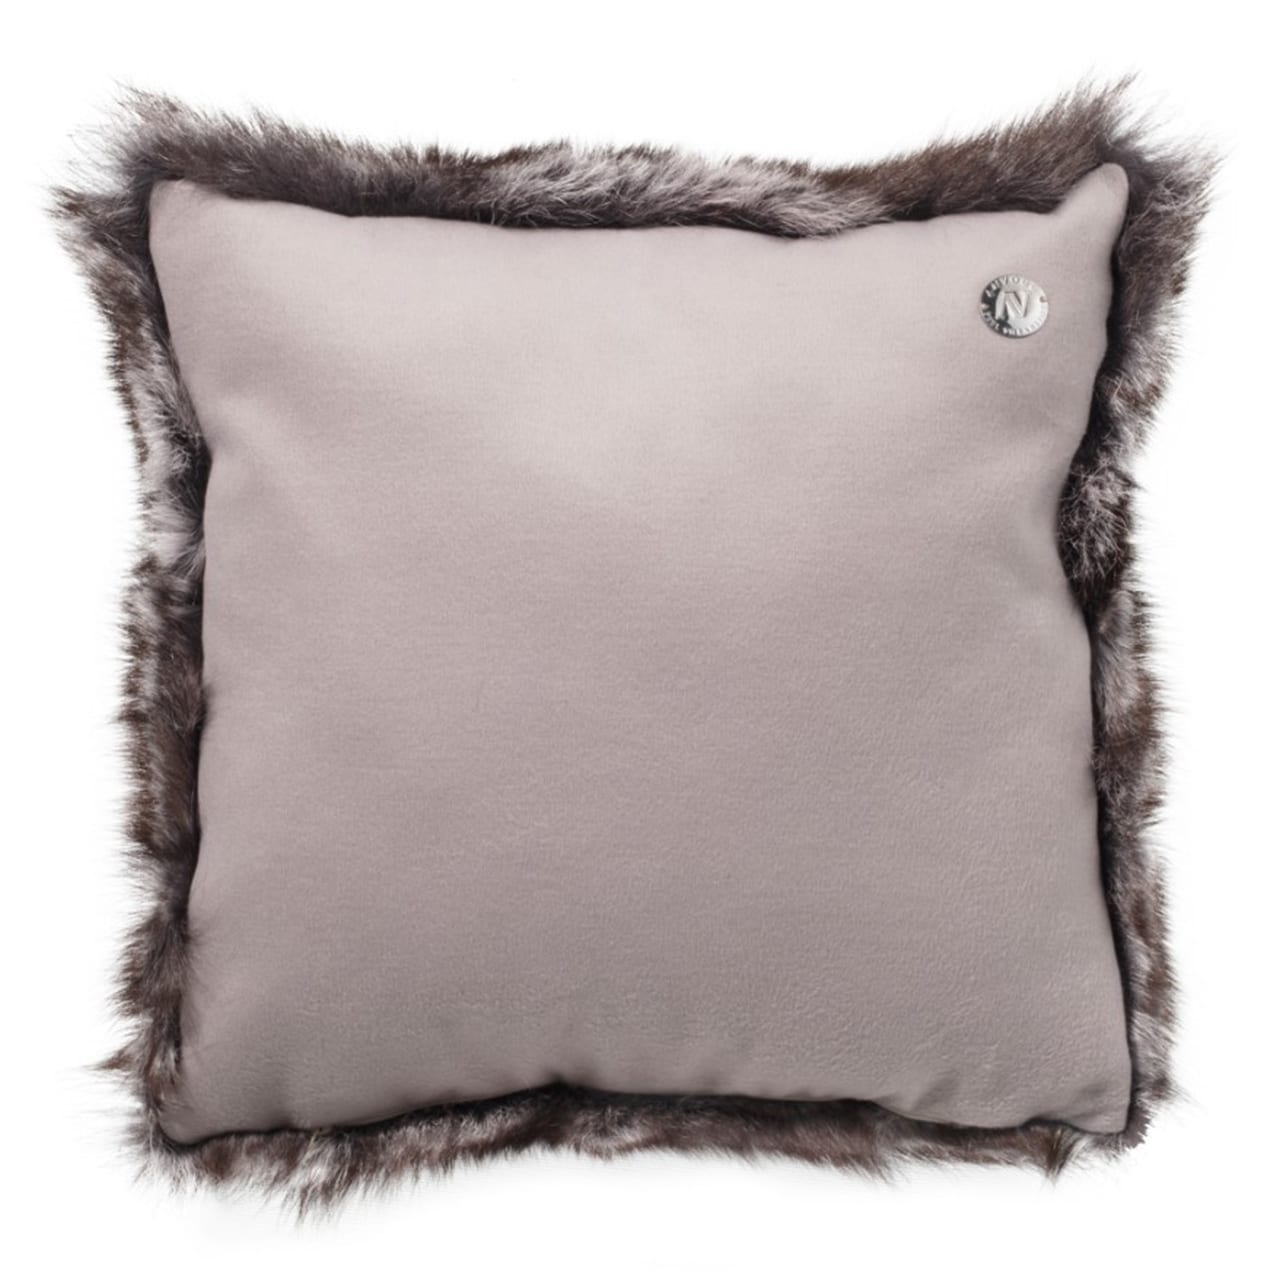 NEW-Shearling Pillow- Sable- 45x45cm (SPSABTO4545) arka - ANVOGG FEEL SHEARLING | ANVOGG